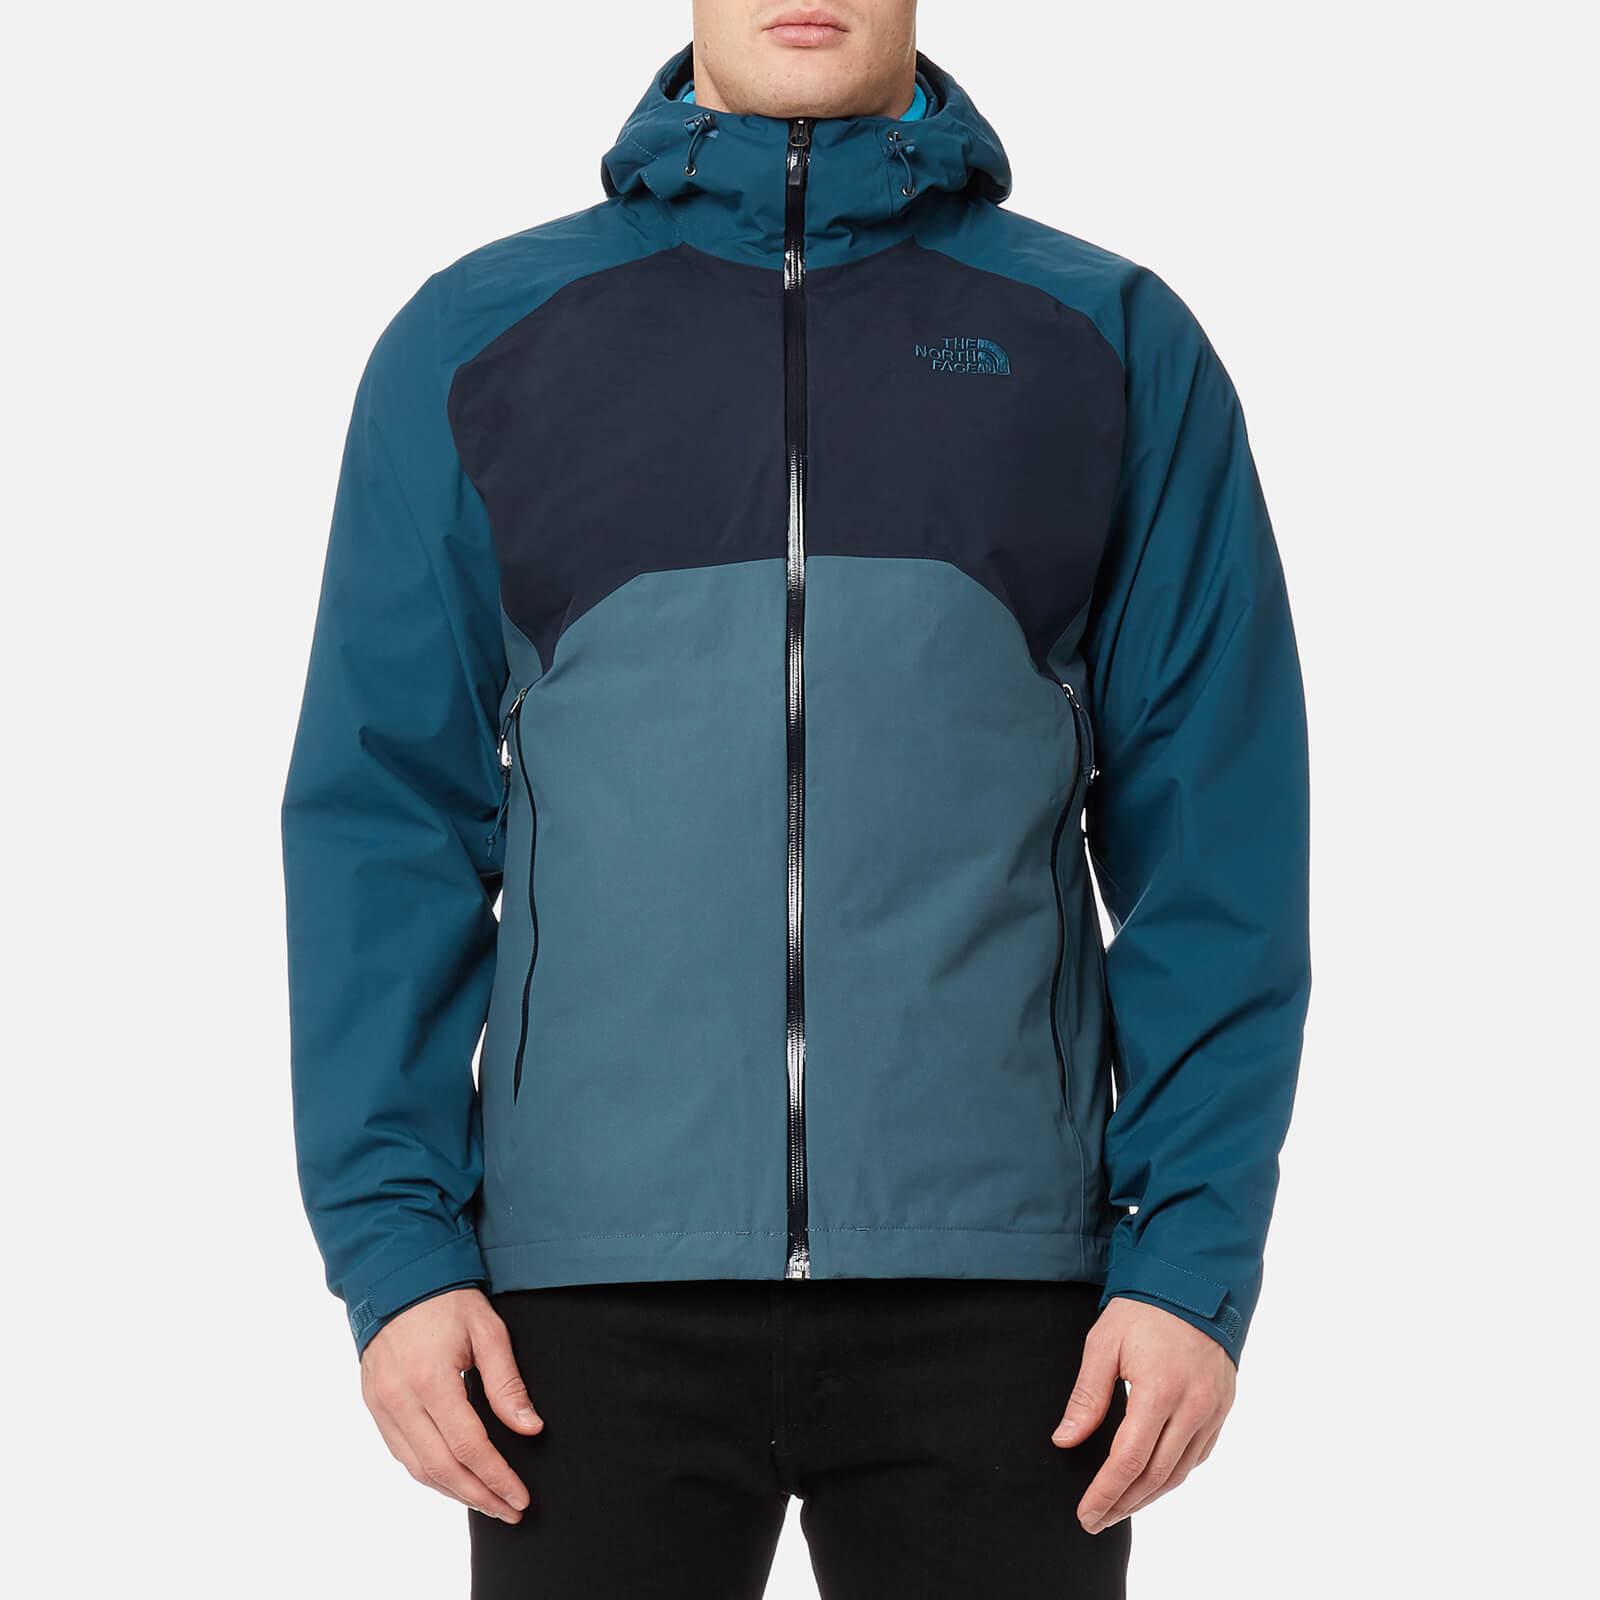 b03175397 The North Face Men's Stratos Jacket - Conquer Blue/Urban Navy/Monterey Blue